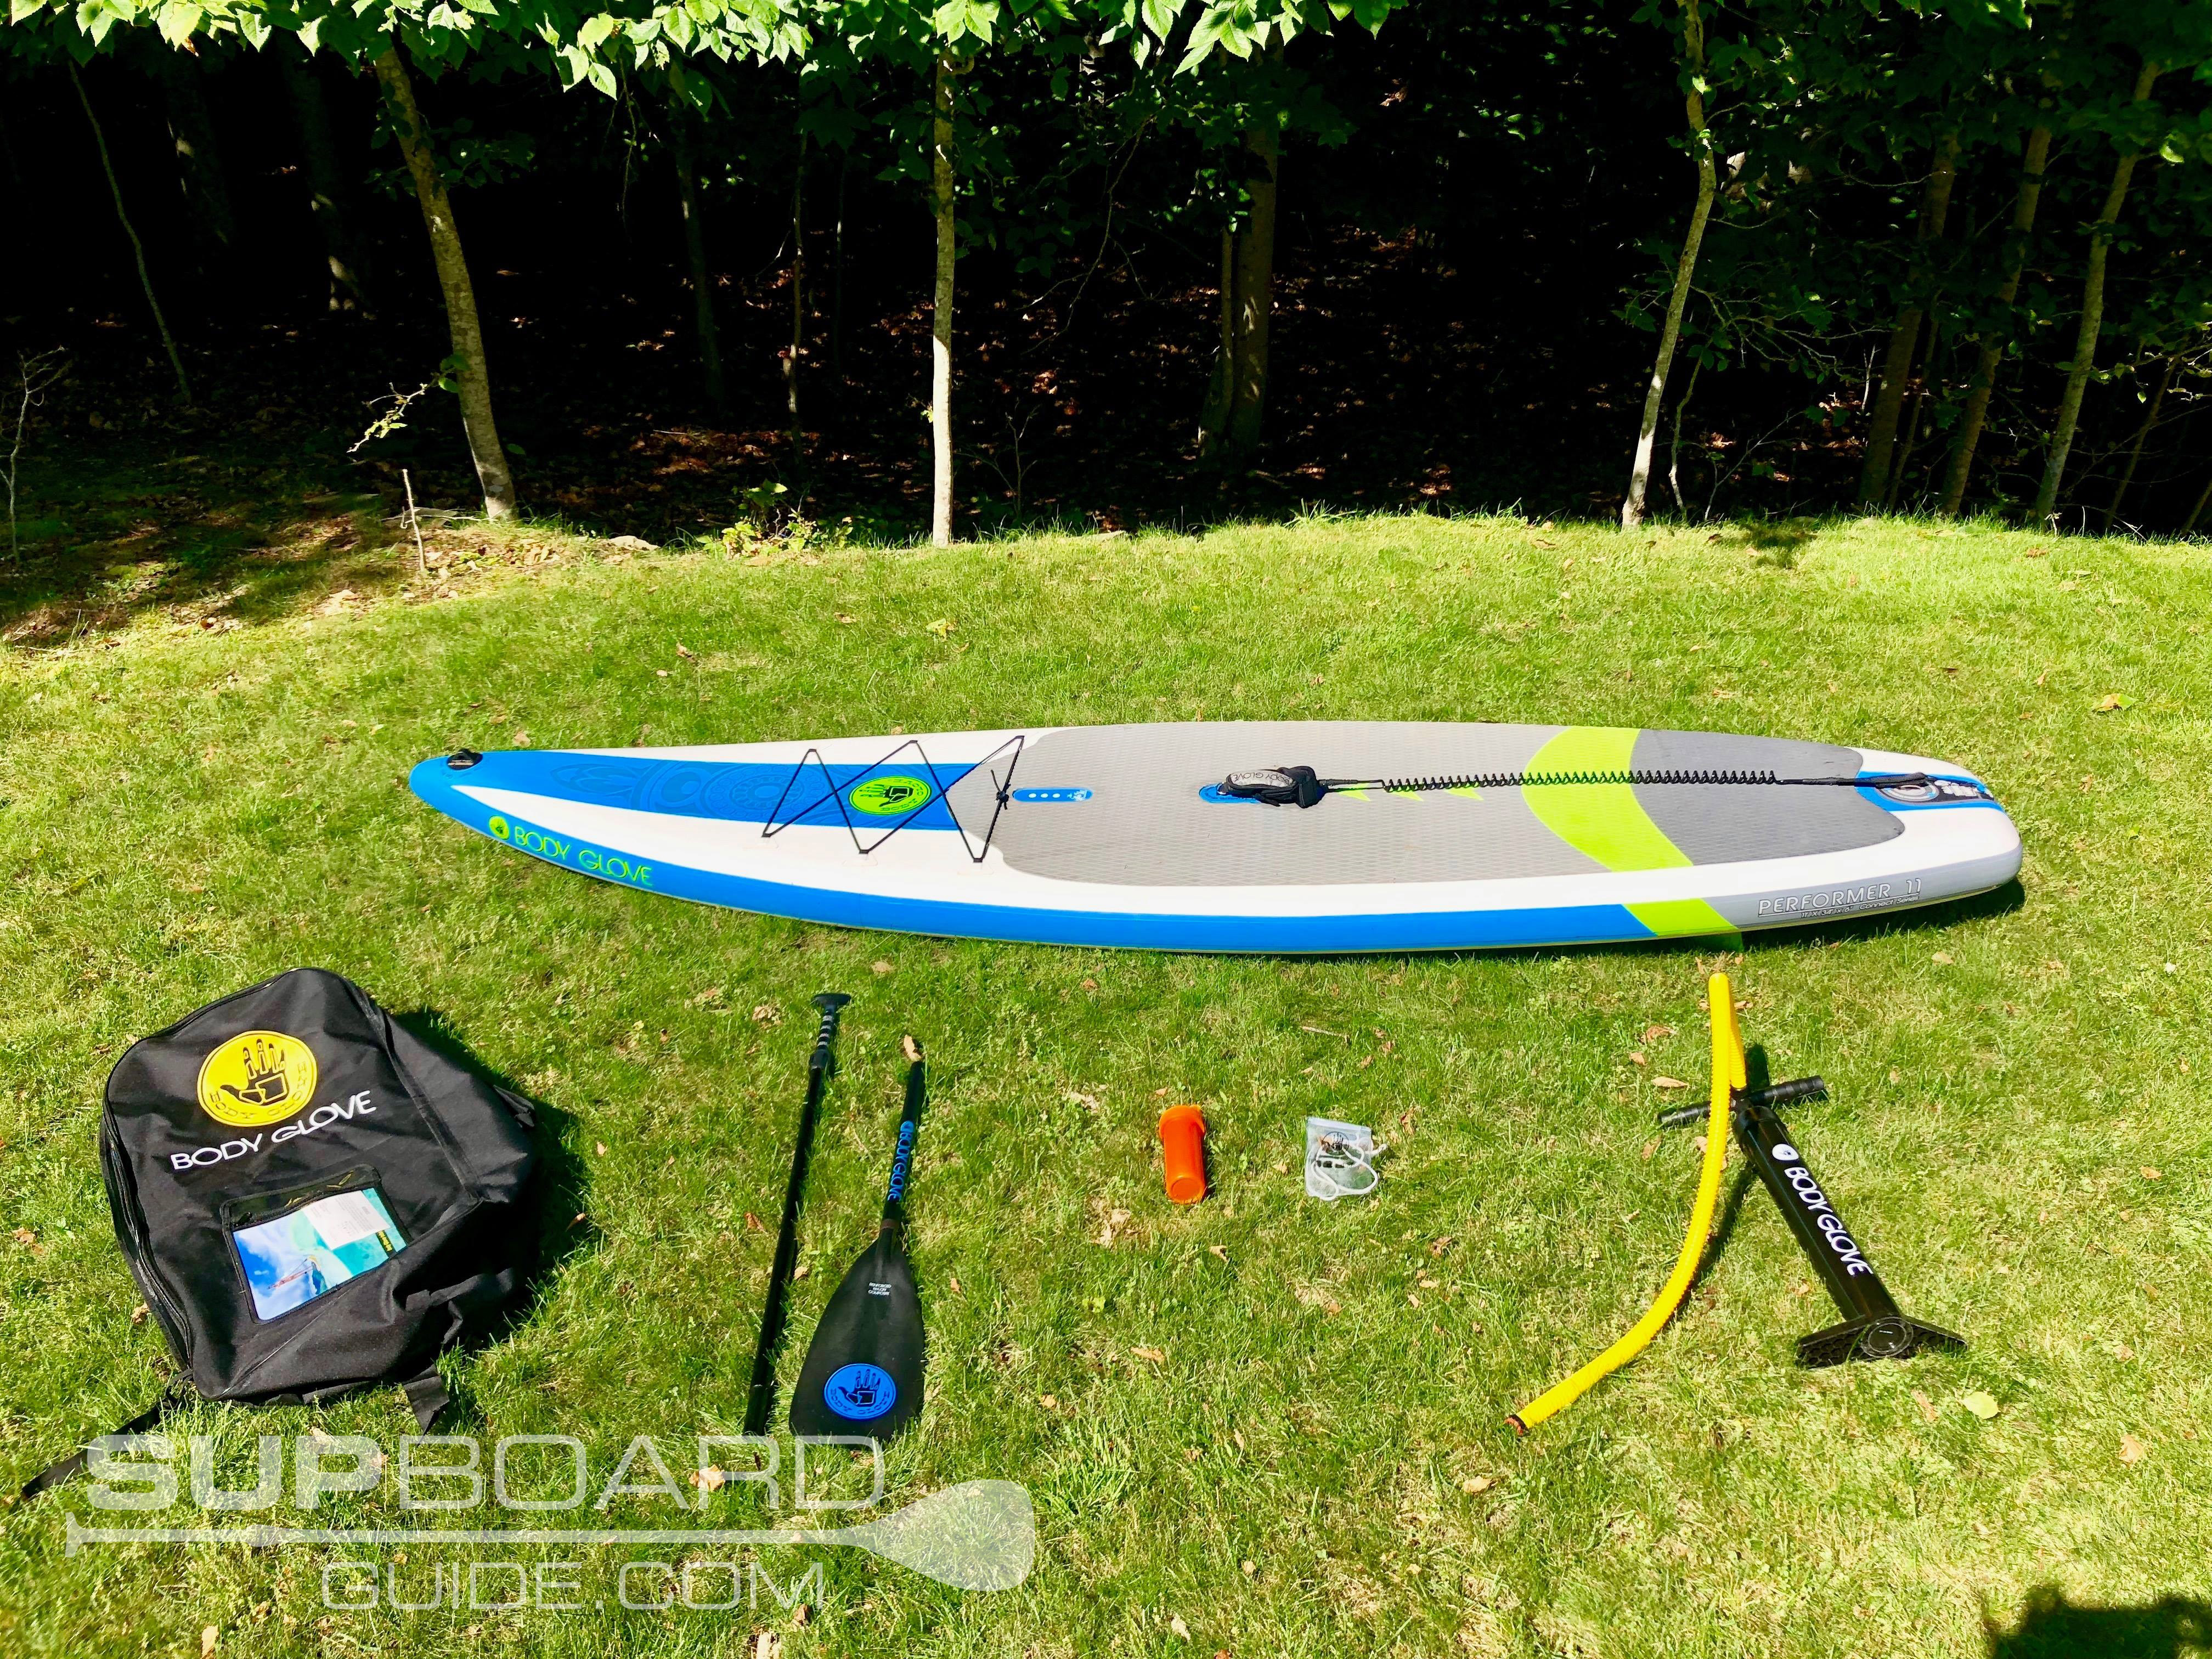 Bodyglove SUP Board Review